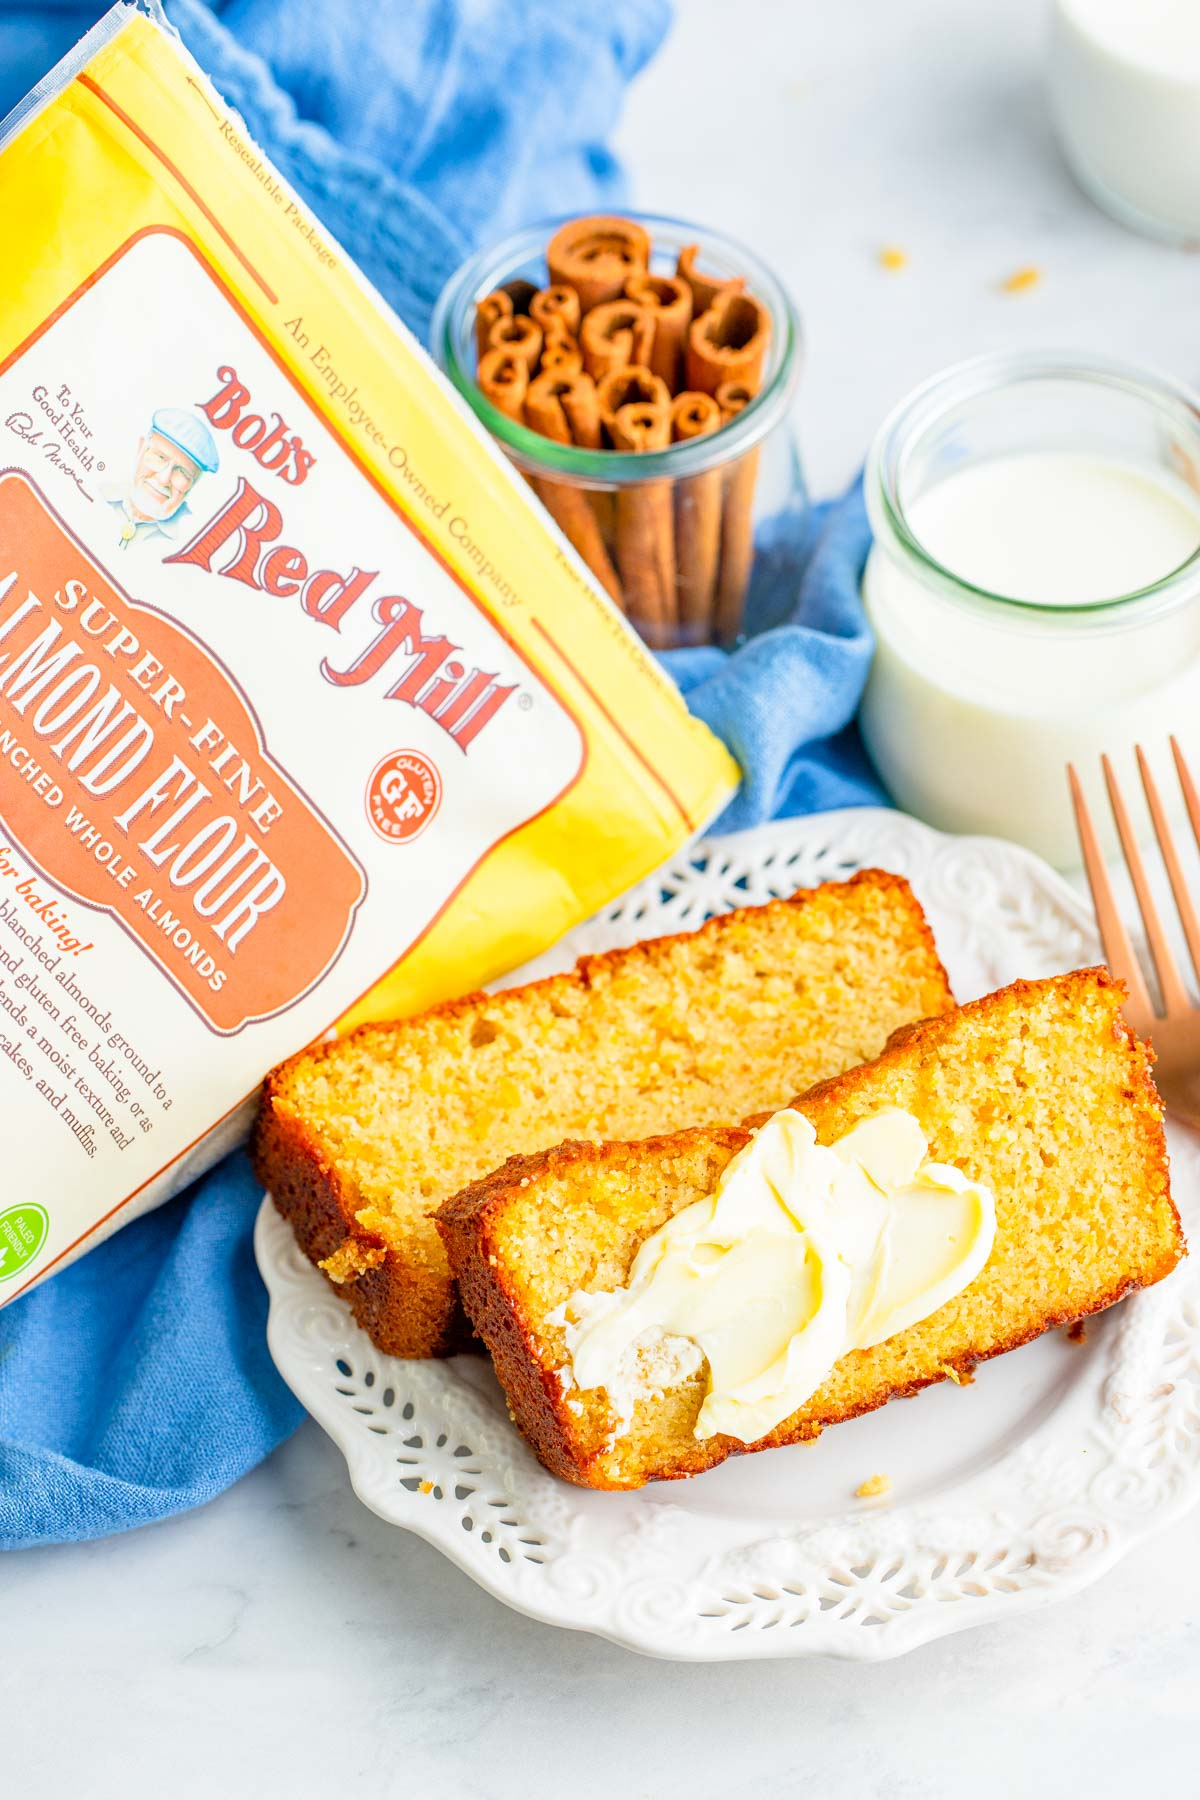 two slices of sweet potato bread with butter, a fork on the side, a glass of milk, and a package of bobs red mill almond flour.